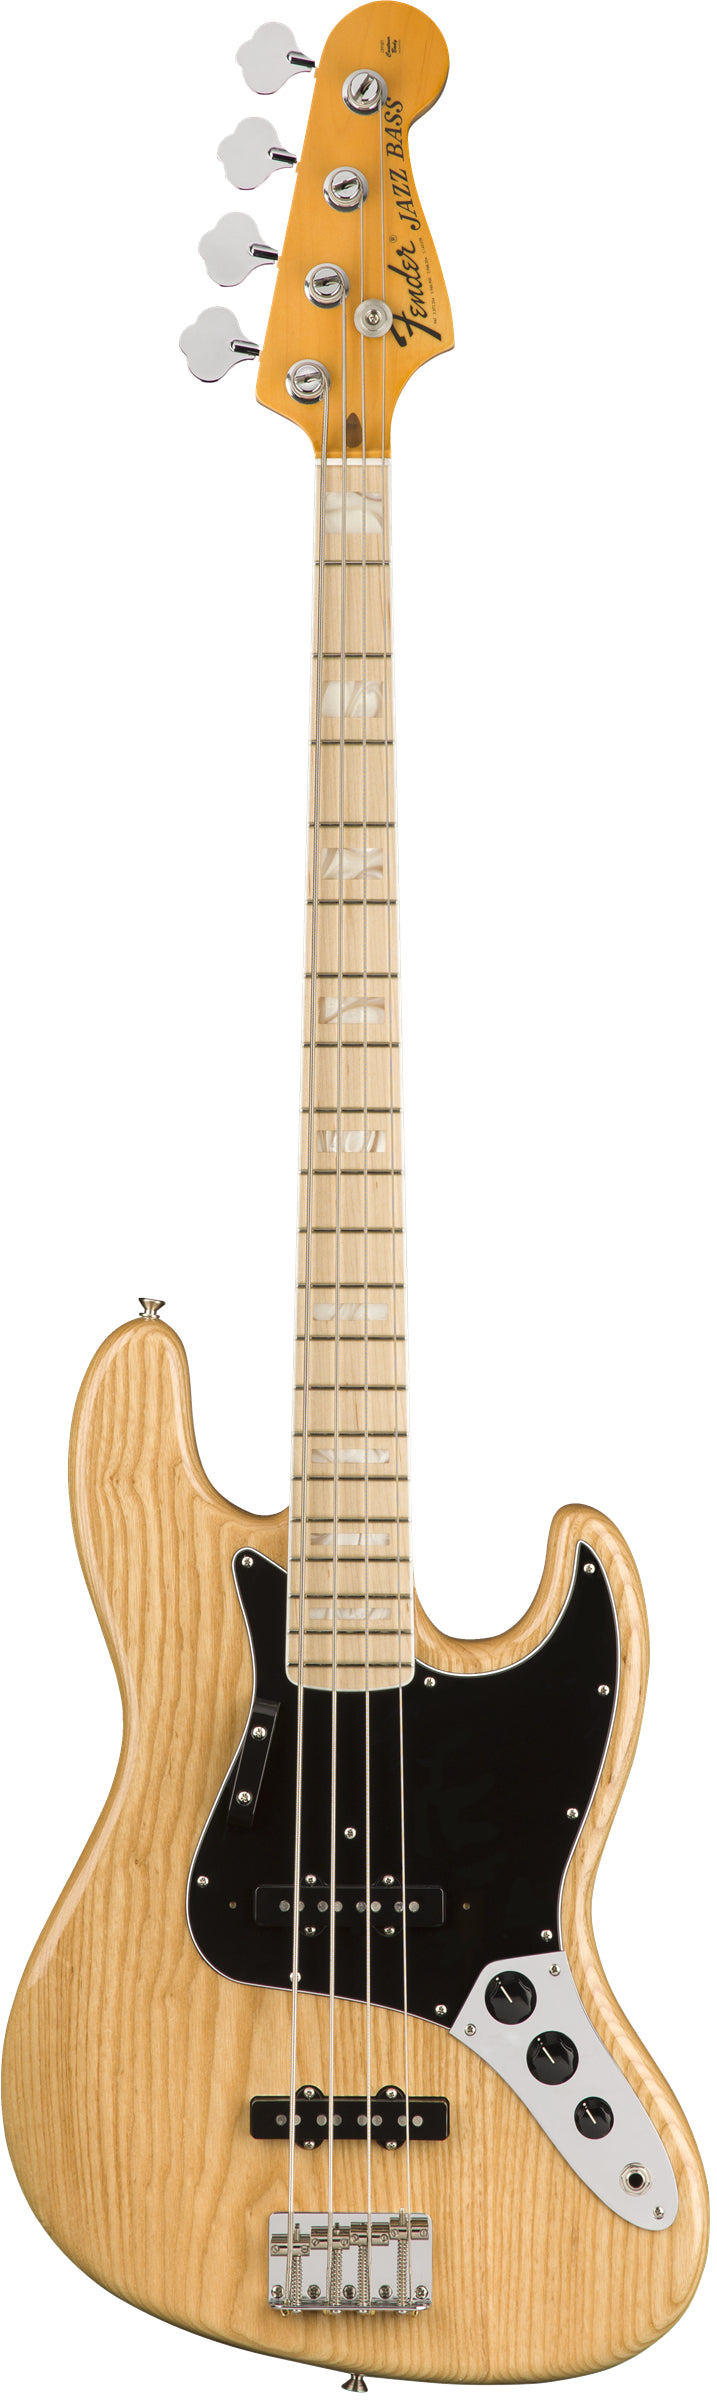 The Fender American Original '70s Jazz Bass, Maple Fingerboard, Natural